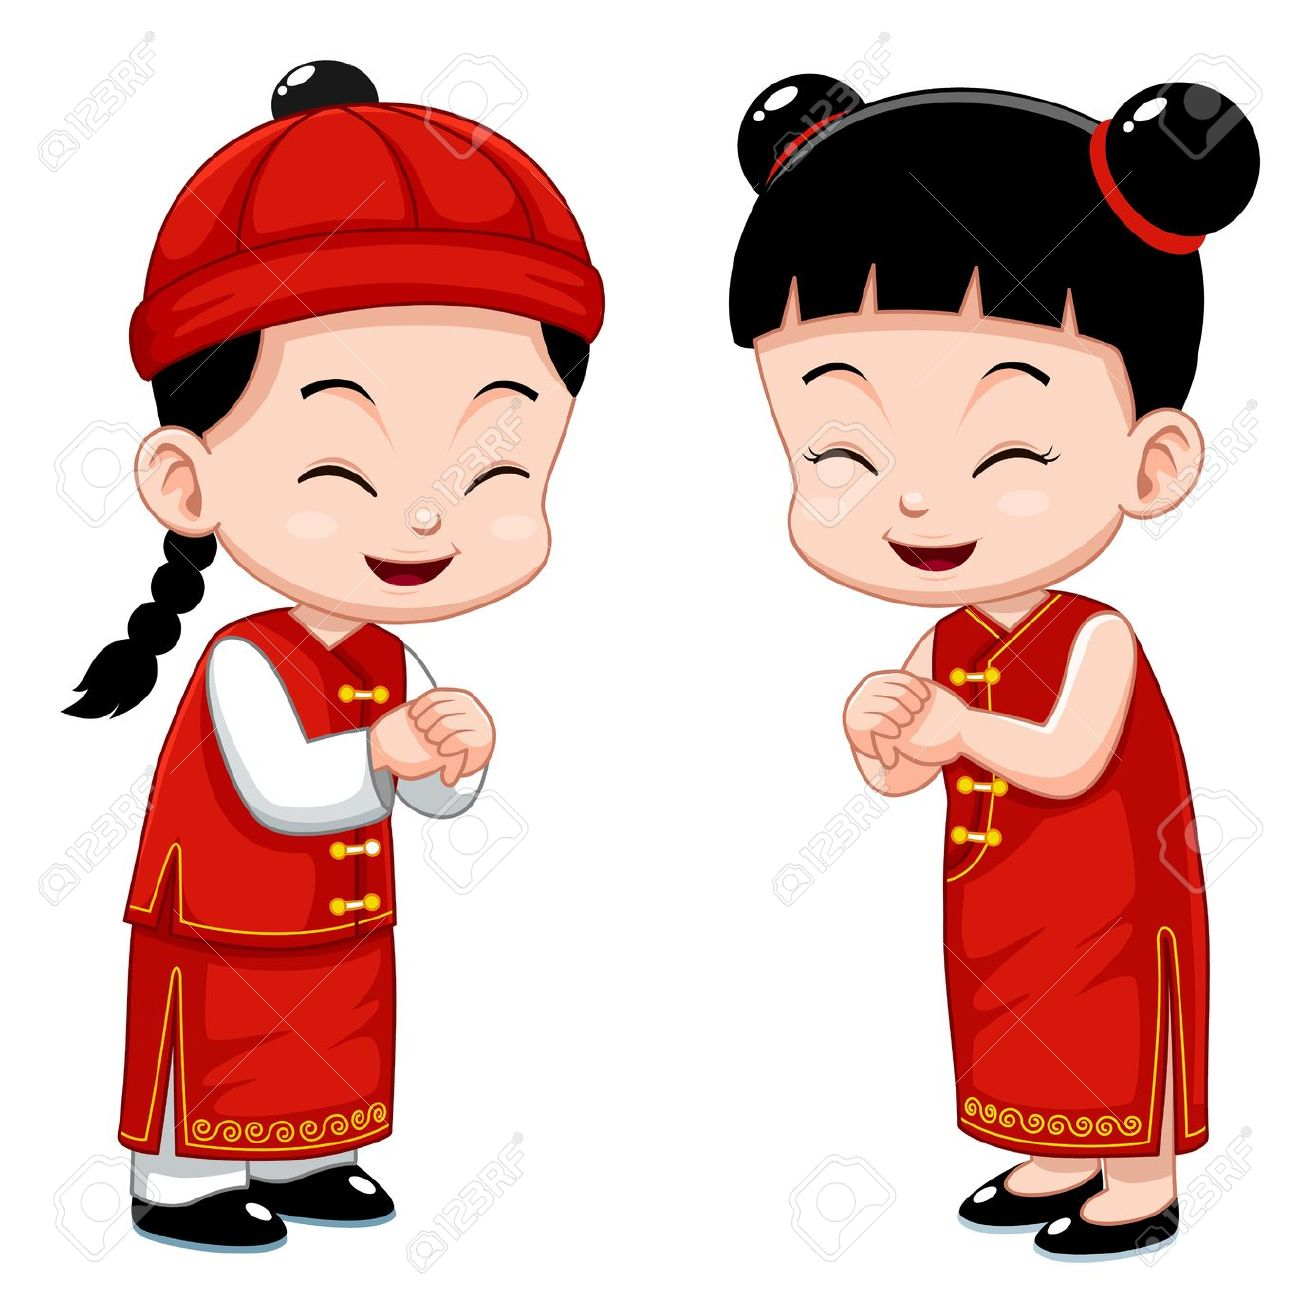 2,843 Chinese Boy Stock Vector Illustration And Royalty Free.